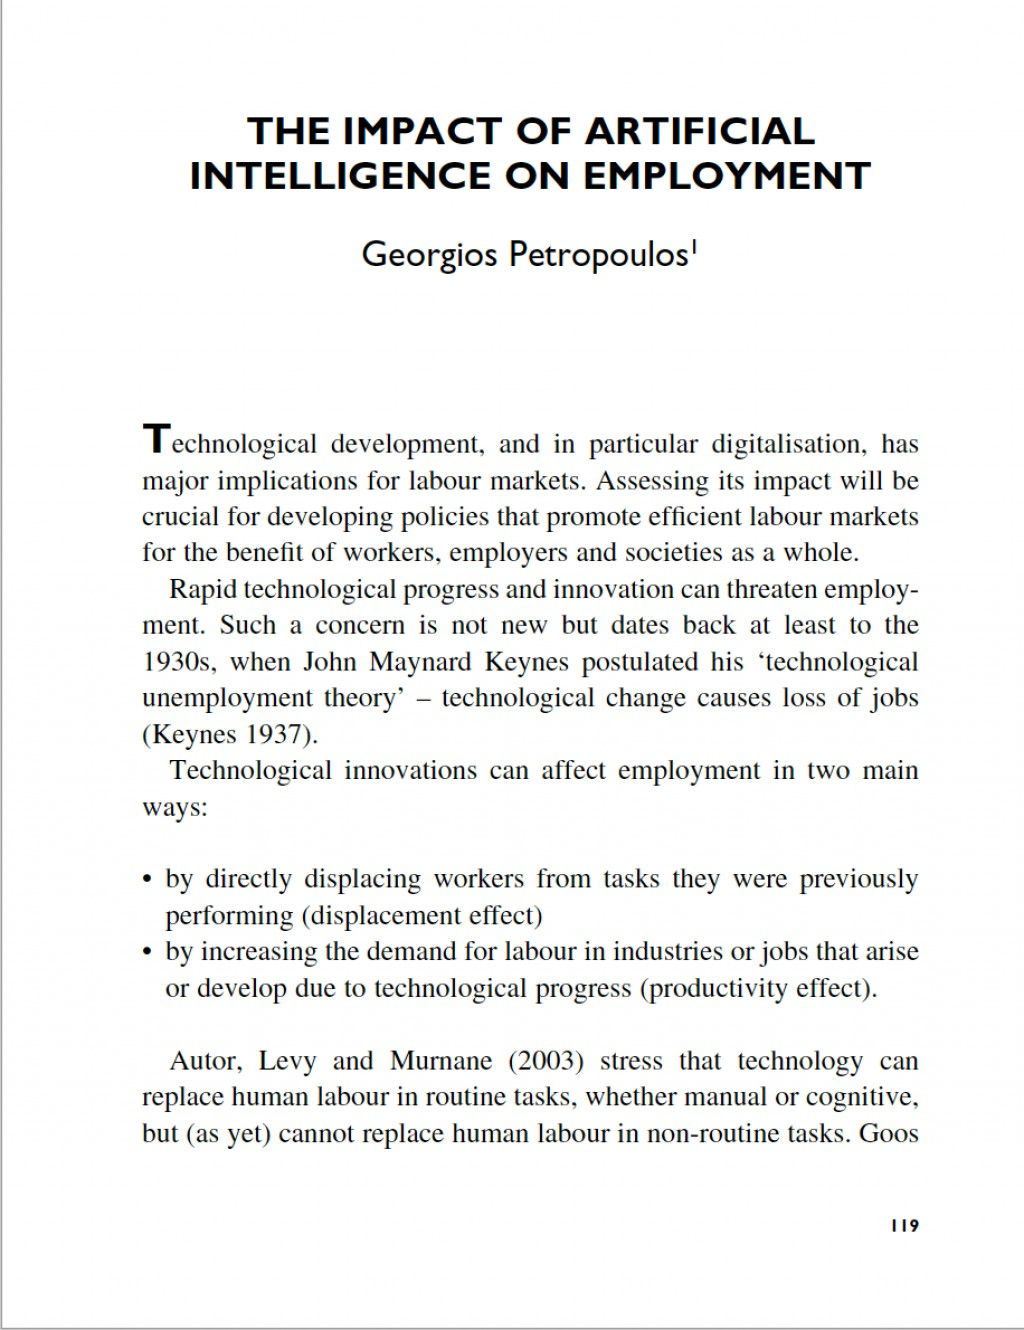 011 Artificial Intelligence Researchs Essays Screen Shot At Striking Research Papers Ieee Download Topics Large